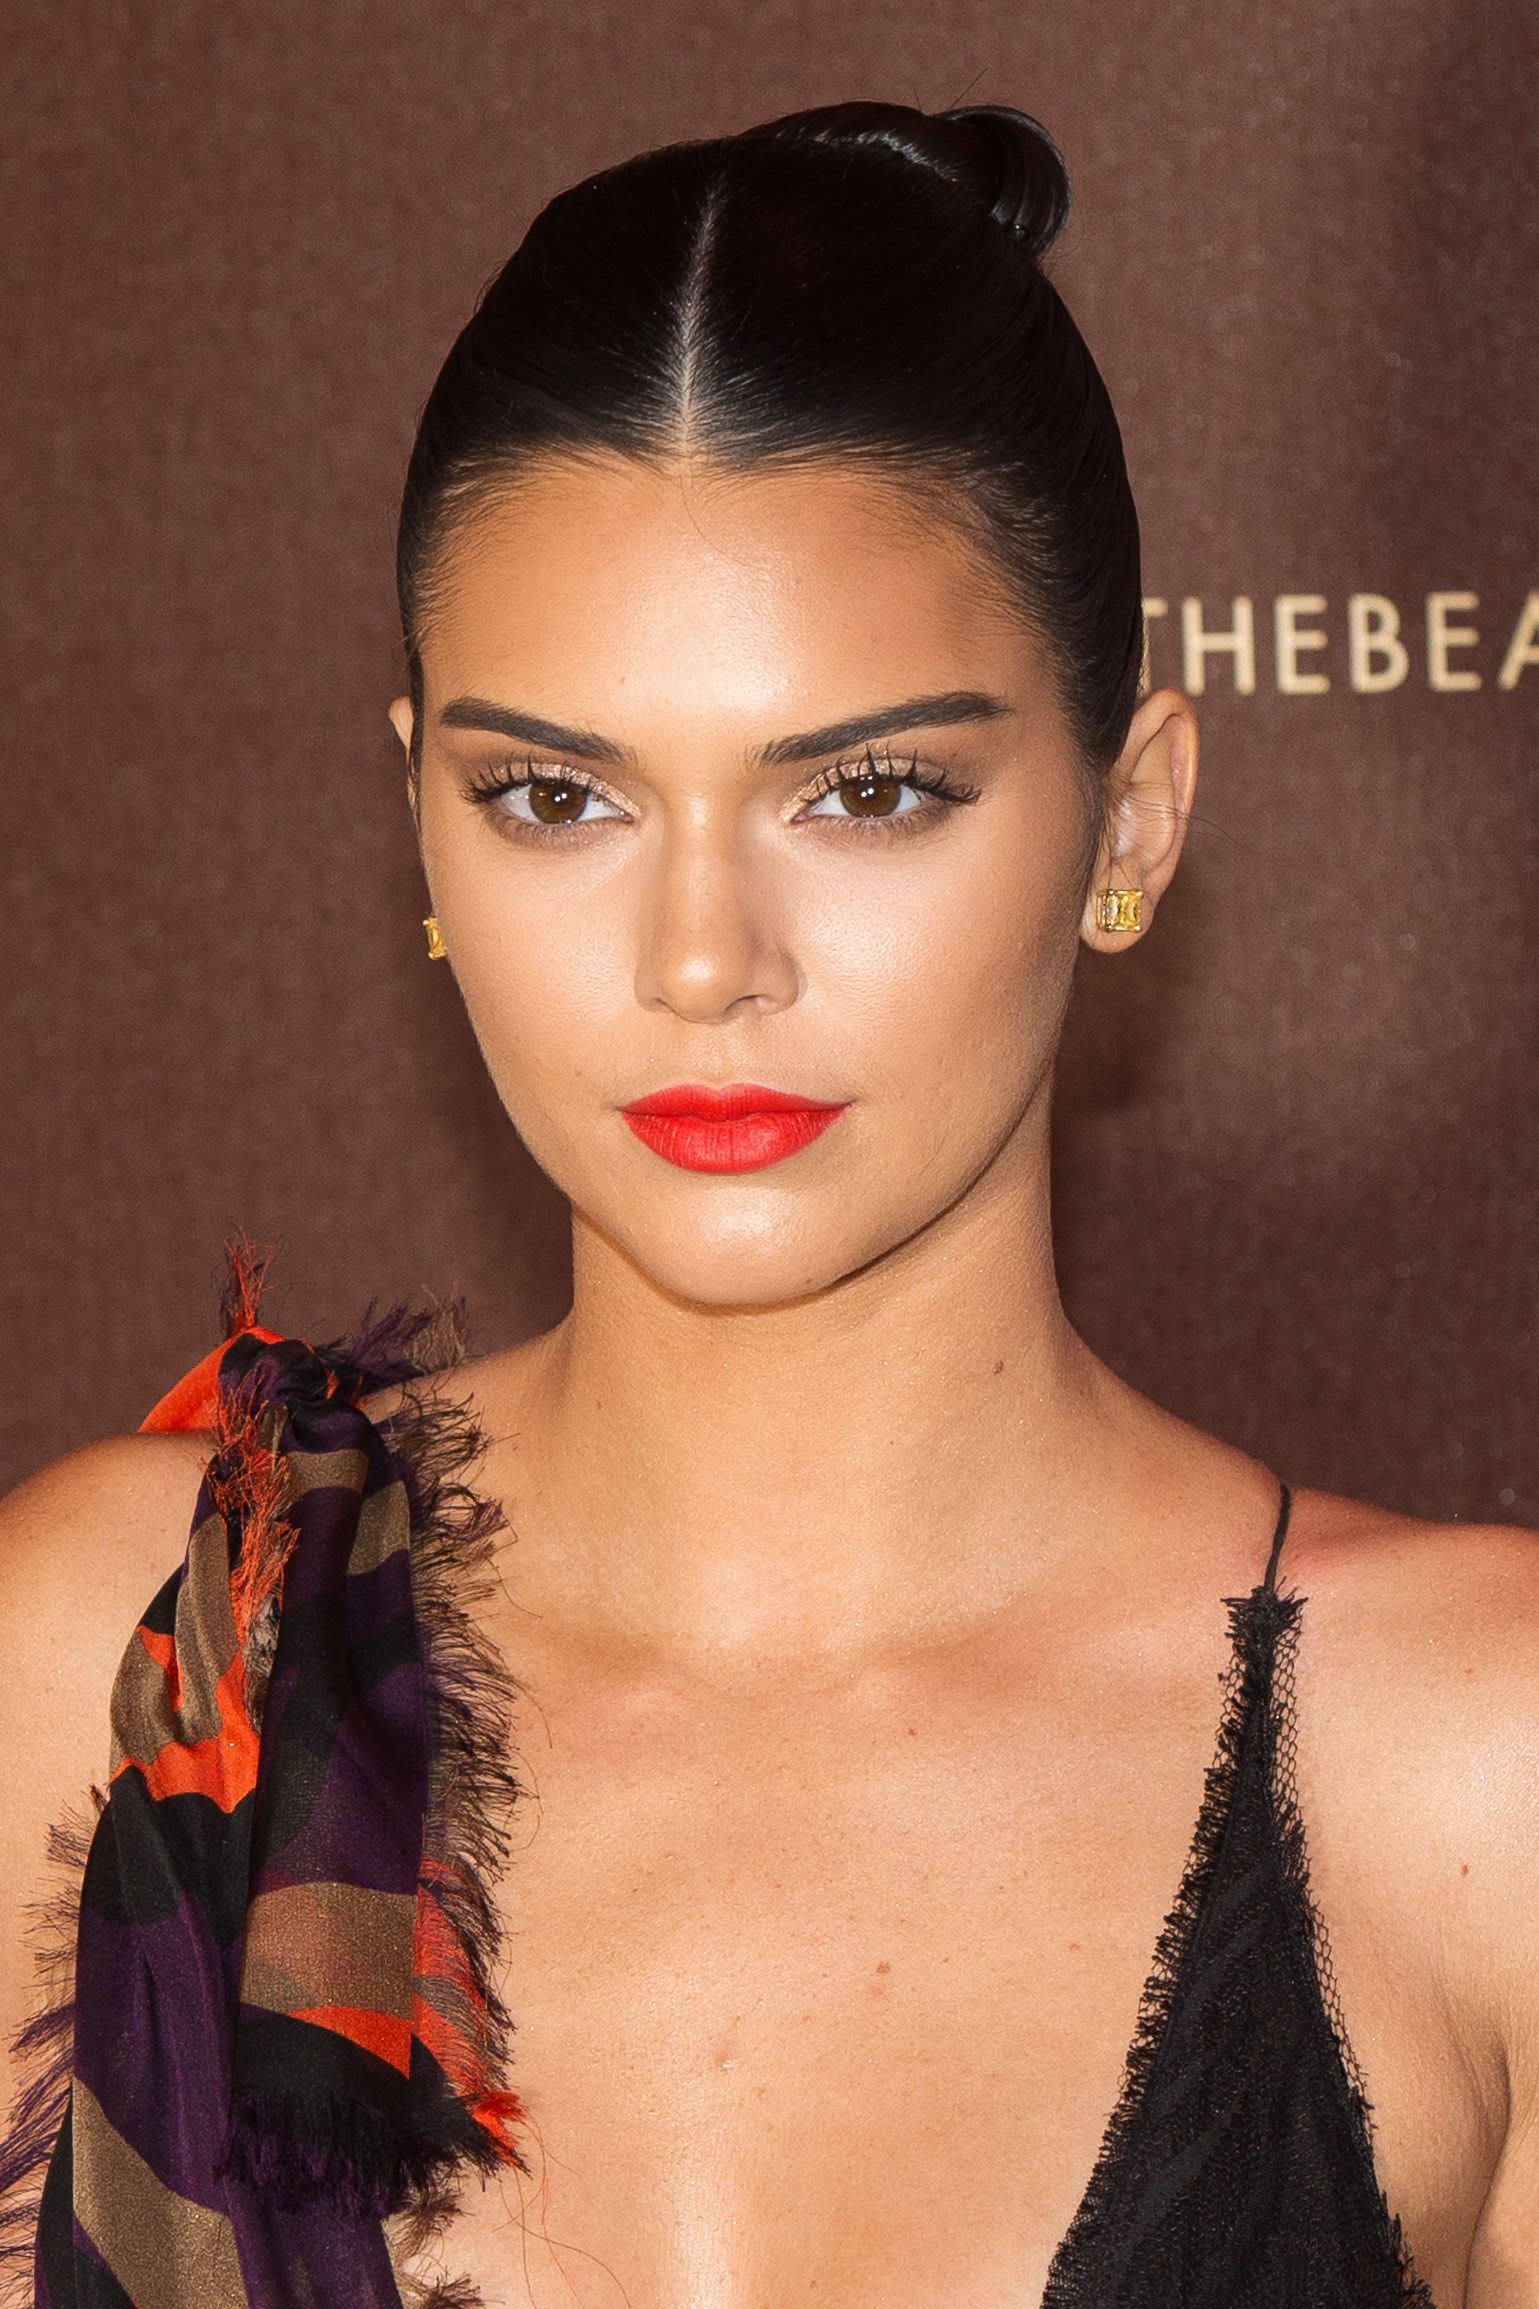 65 kendall jenner hair looks we love kendall jenners hairstyle 65 kendall jenner hair looks we love kendall jenners hairstyle evolution pmusecretfo Images